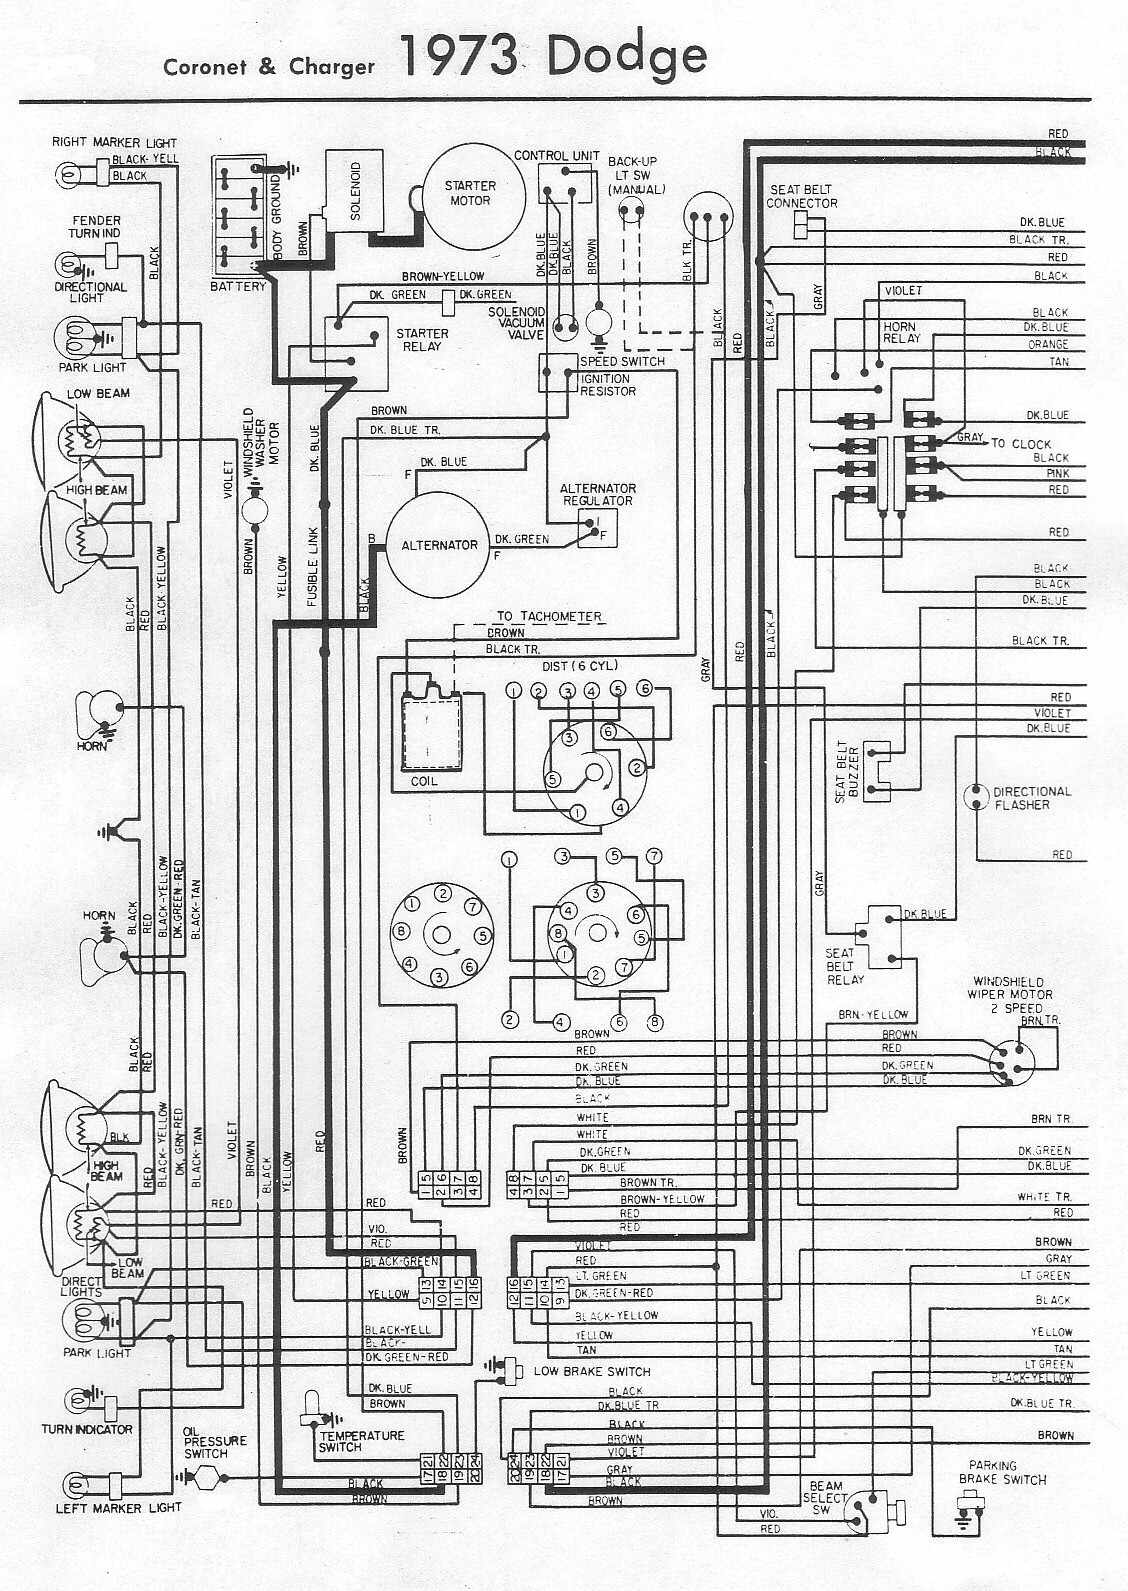 Electrical Wiring Diagram Of Dodge Coro  And Charger on diagrams for 1973 charger